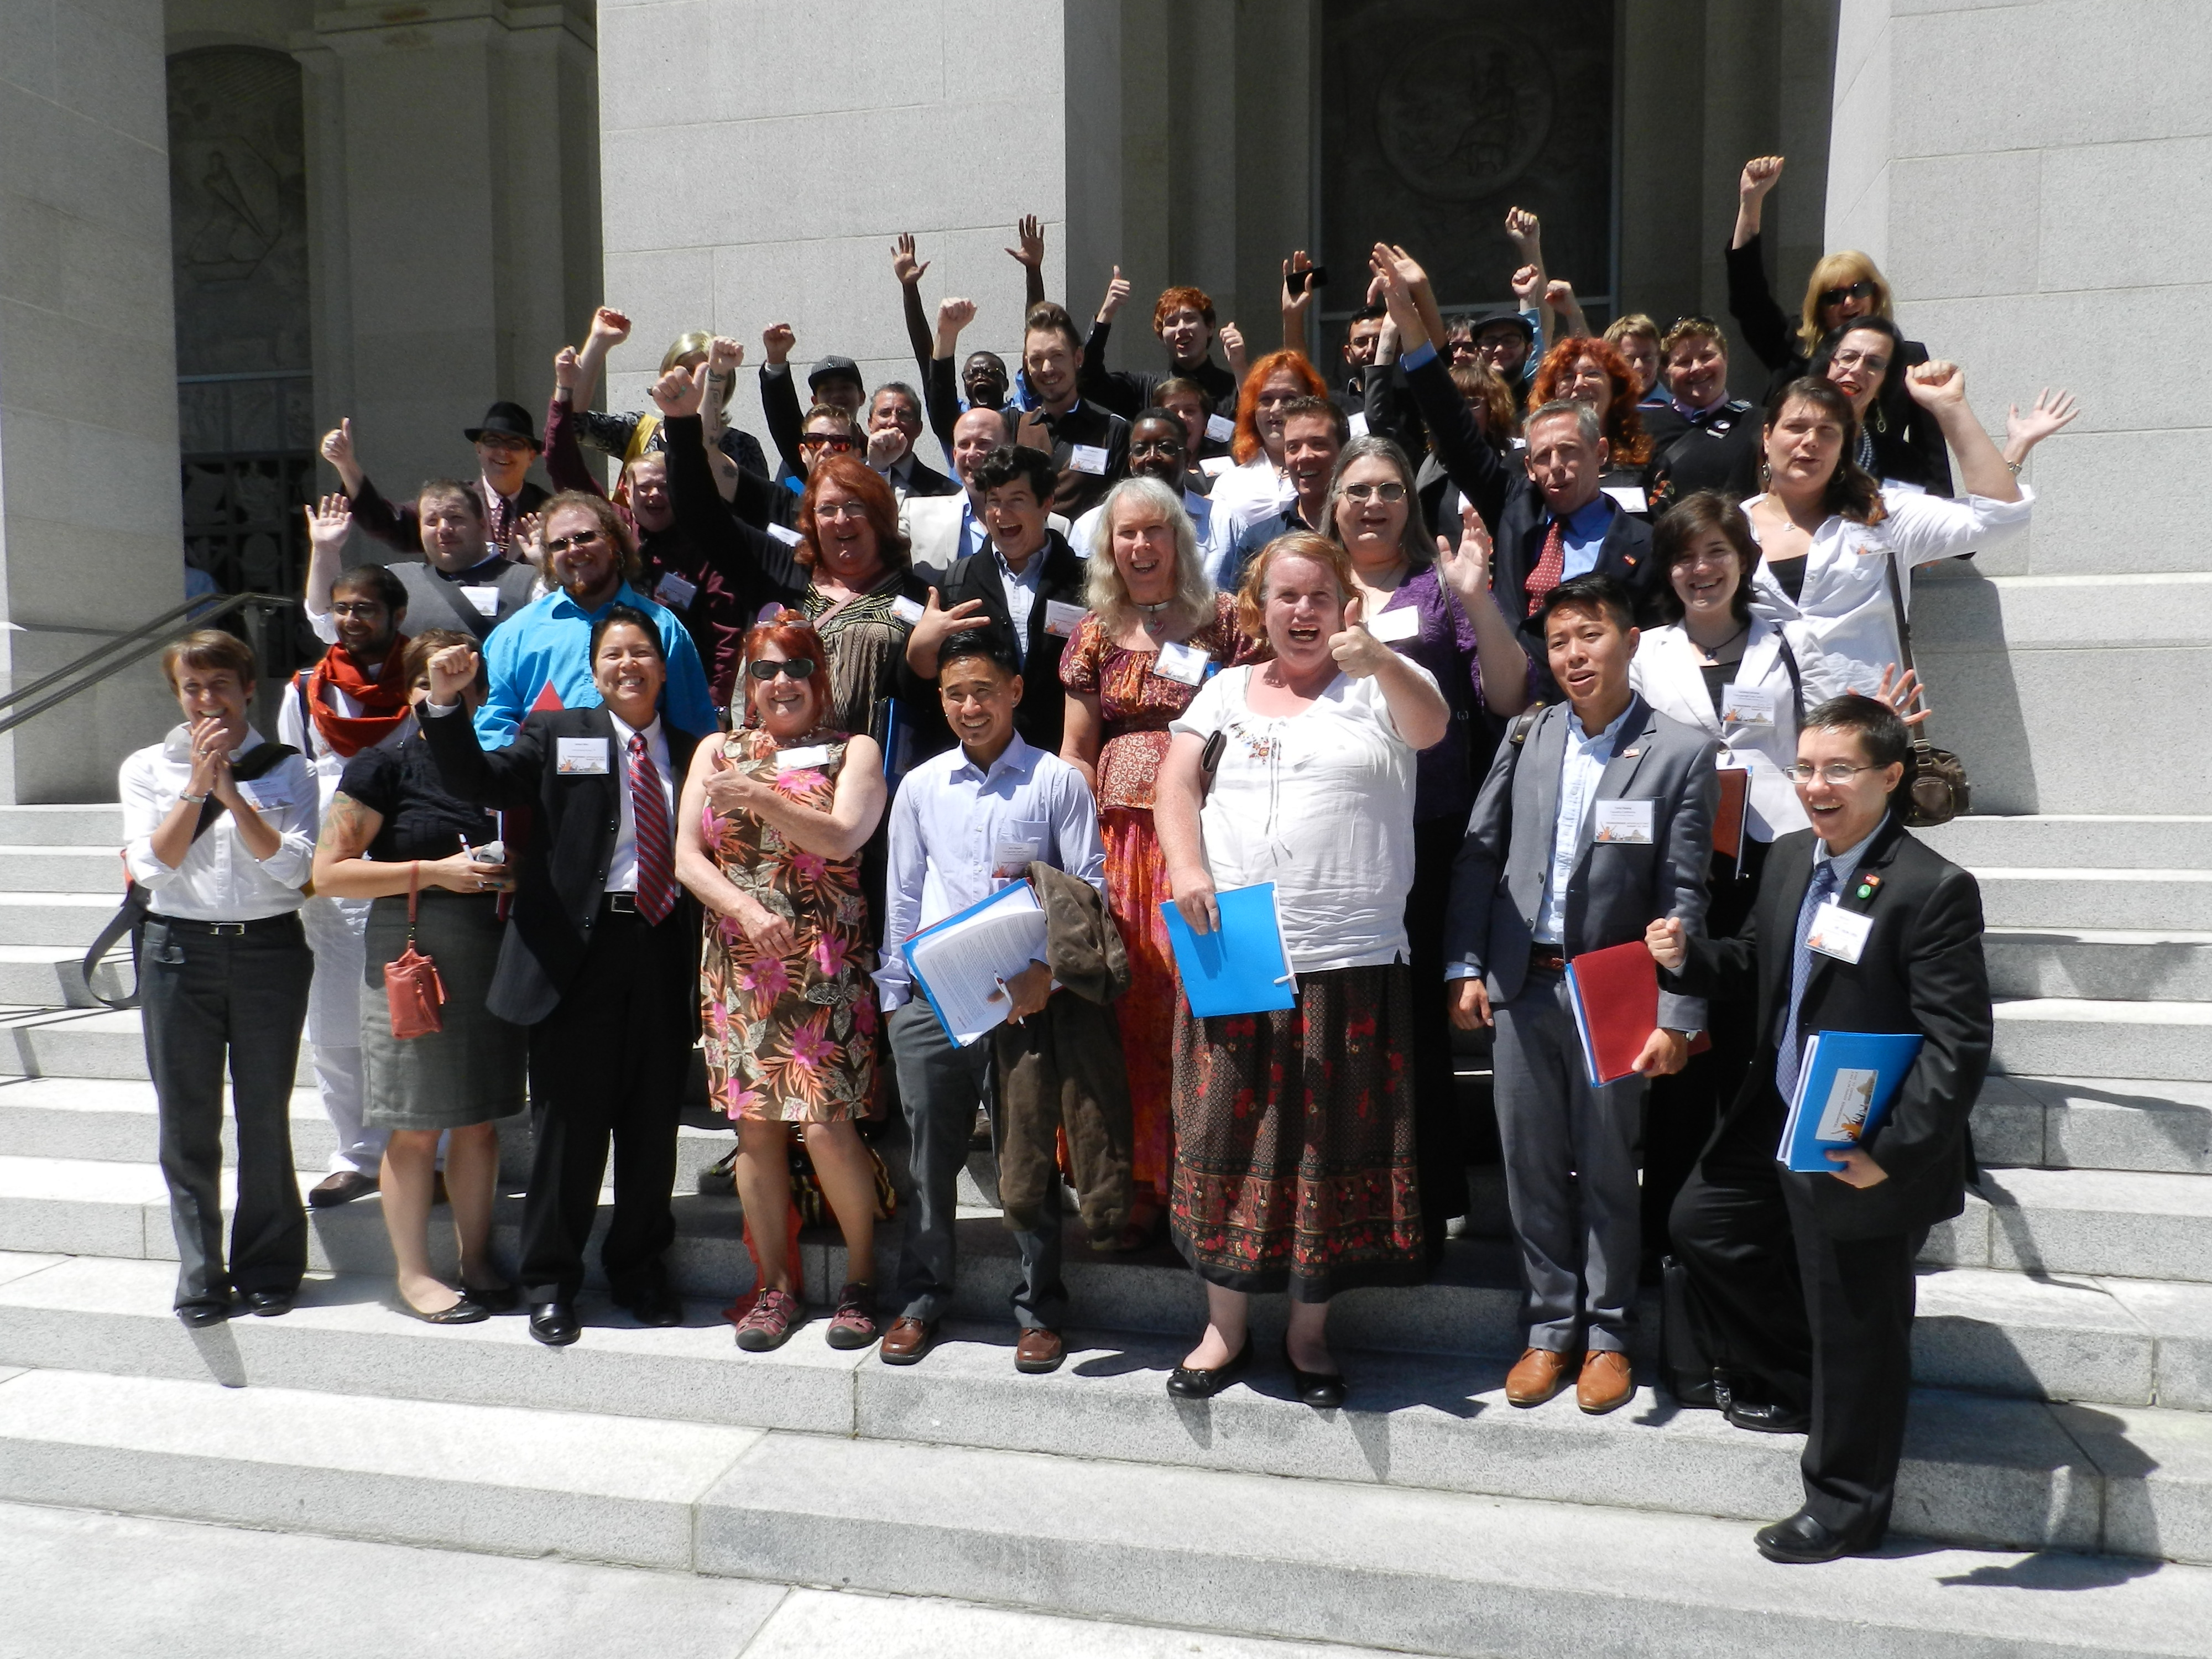 Image: Approximately 50 California Transgender Advocacy Day Citizen Lobbyists Cheering At The News Governor Brown Signed AB 1266 (The School Success and Opportunity Act) On August 12, 2013